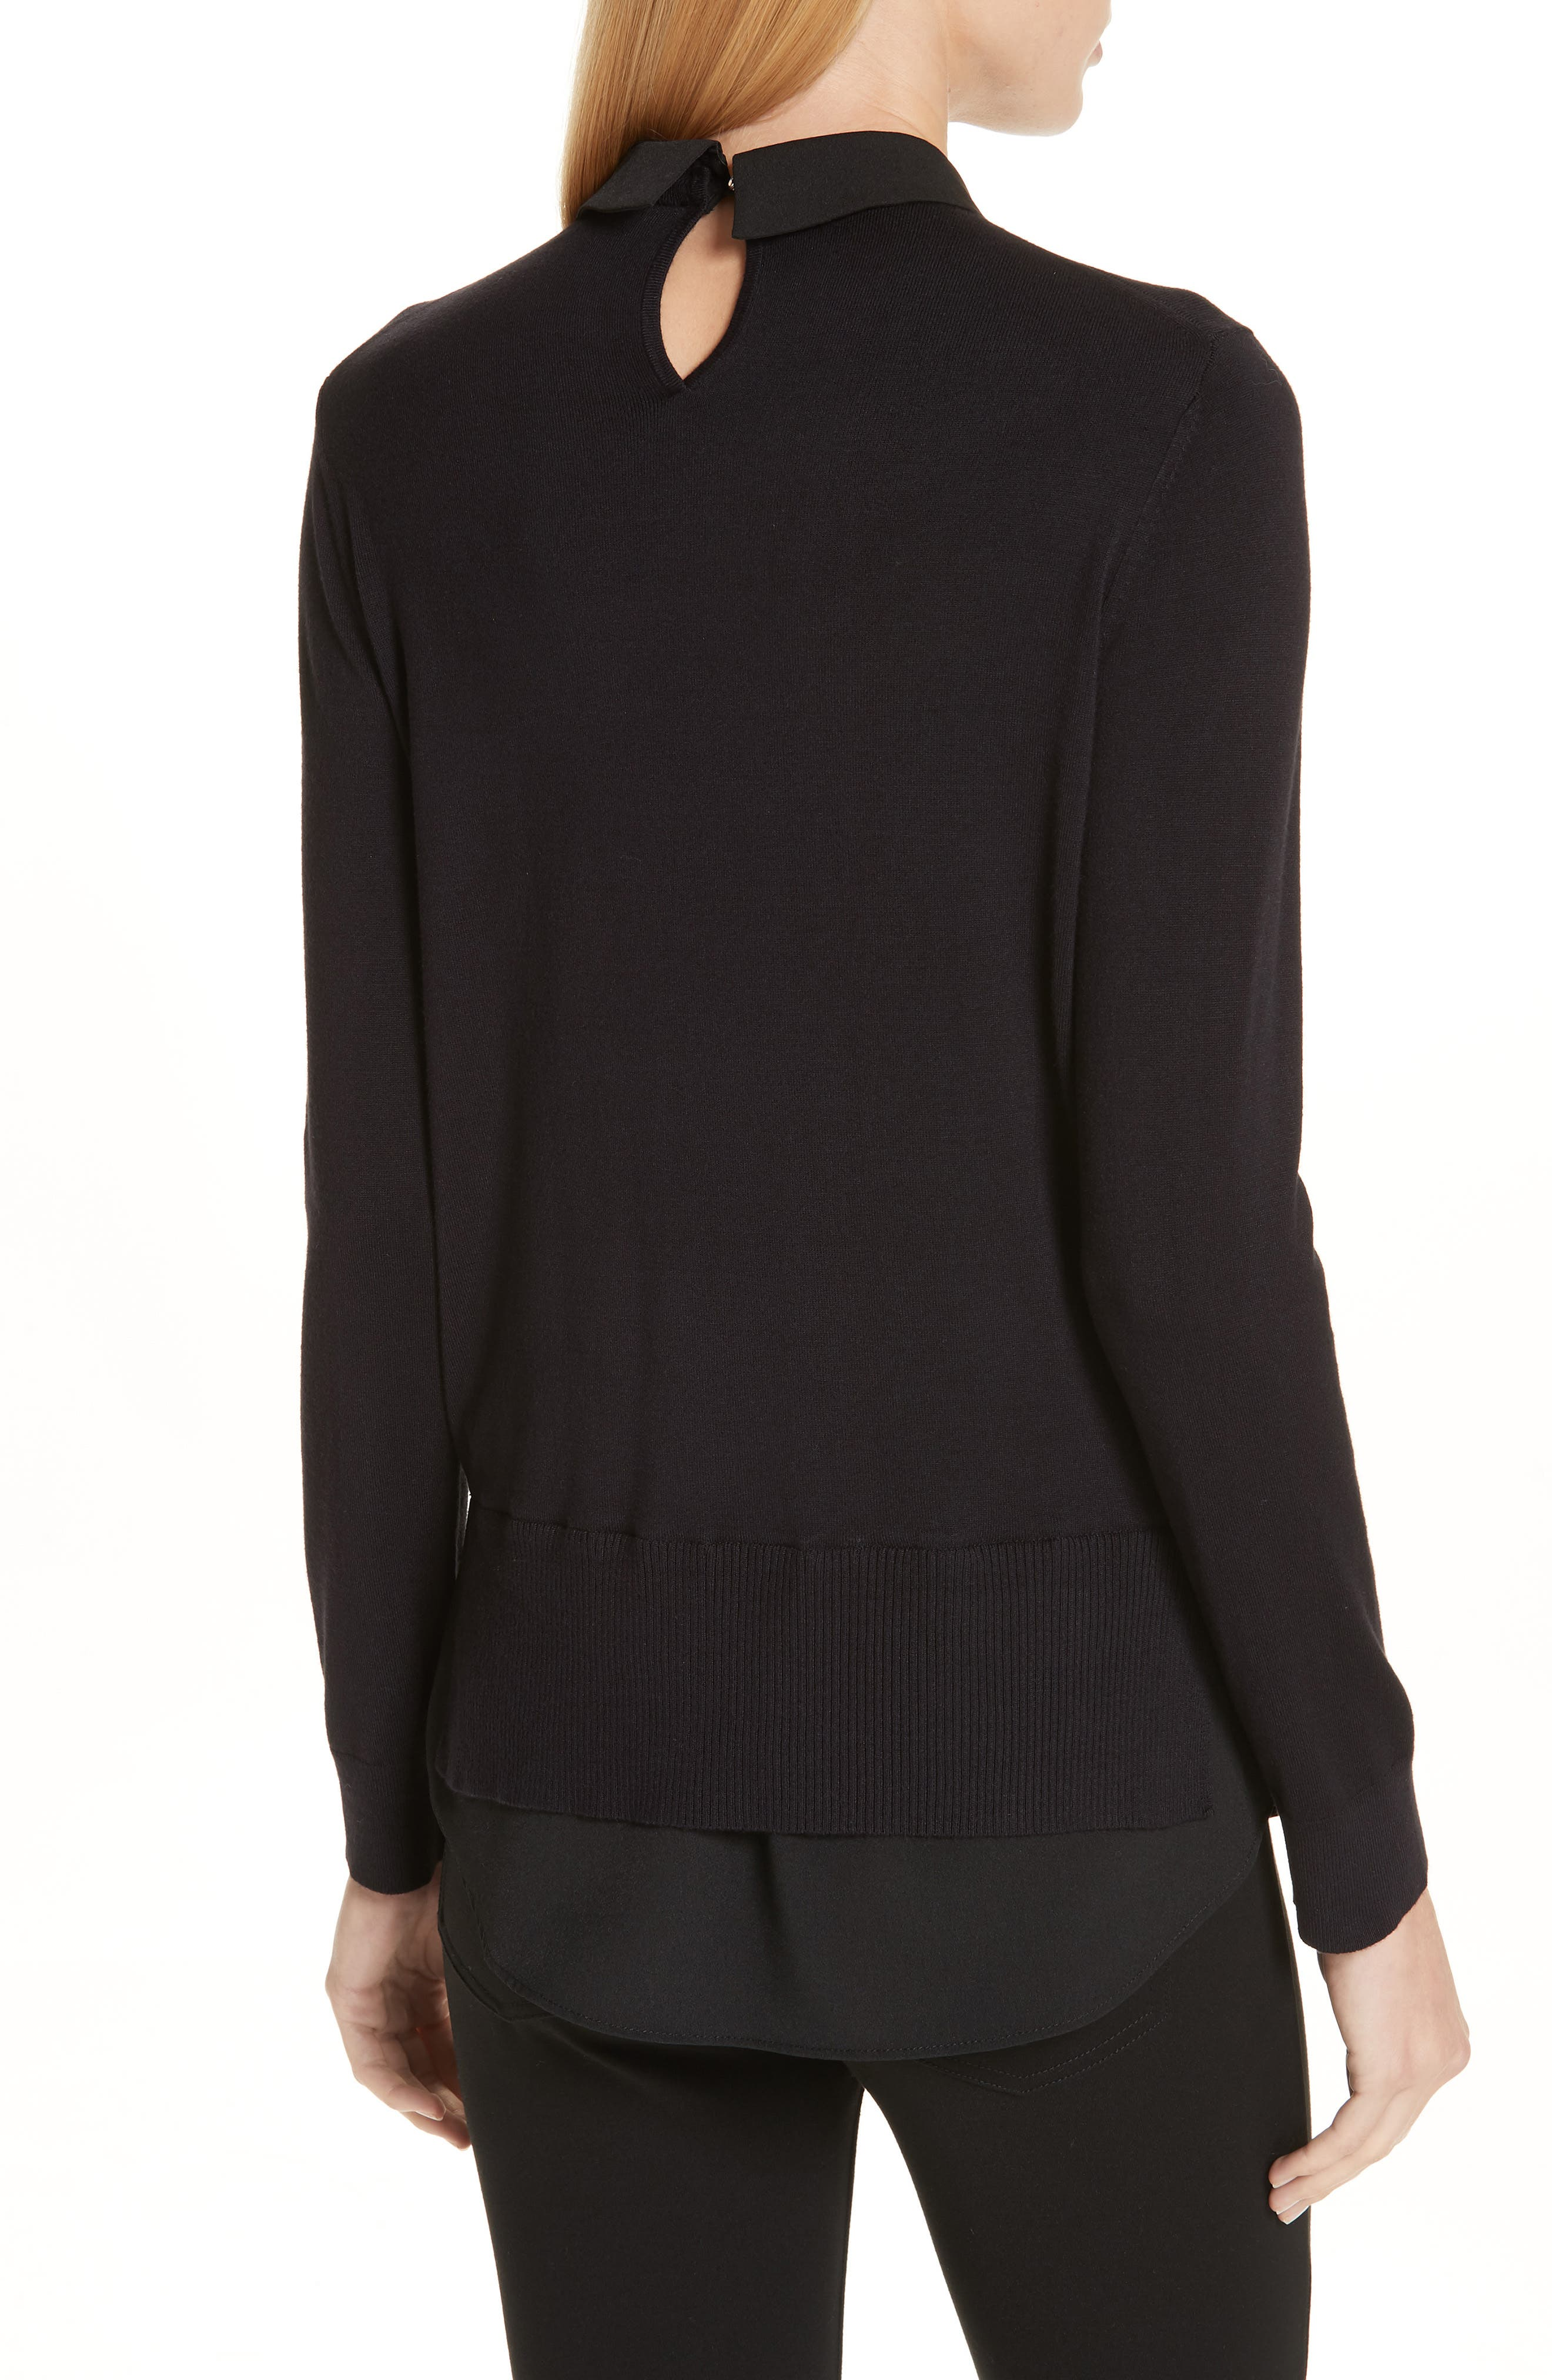 Moliiee Embroidered Collar Sweater,                             Alternate thumbnail 2, color,                             BLACK